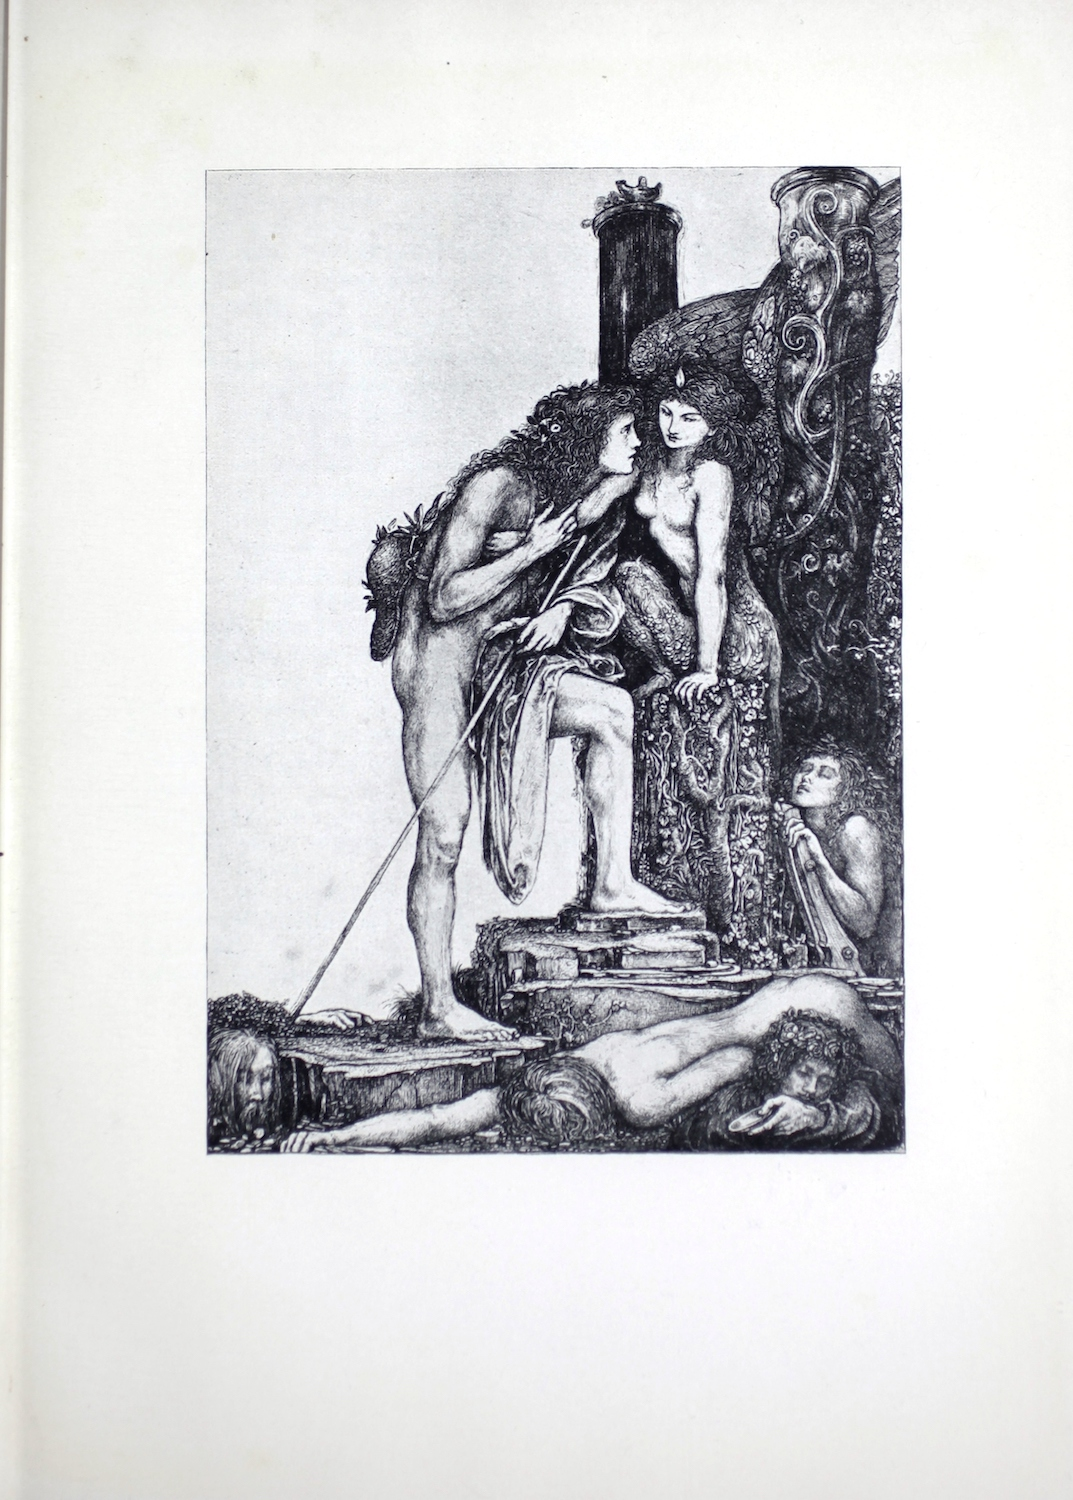 Ricketts' reproduced pen drawing portrays the ancient Greek myth of Oedipus and the Sphinx. In the image, Oedipus is leaning in toward the Sphinx to answer her question. The dead bodies scattered on the ground suggest that other men have tried and failed her test. Oedipus stands naked, in three-quarter profile facing the right. He has long tangled hair and there are a couple of small flowers in the tangles. His right leg is straight, and his left leg is bent as he is on steps and bends forward to speak to the Sphinx. On his lap rests his unworn robe and his staff, loosely held up by his left hand. A hat hangs down his back from a string around his neck. Facing Oedipus is the Sphinx, which has a female human upper body and the lower body of a lion. She also has large wings on her back. She is in three-quarter profile facing left and sits on a pillar which looks like it is carved from a tree stump and covered in vines. Her eyes look down, suggesting that she is listening to Oedipus speak. She is surrounded by two large pillars with vines crawling up their length. The pillar furthest from the viewer has a small smoking lamp resting on the top. The top of the pillar closest to the viewer cannot be seen. Behind the Sphinx, a woman is emerging from underground, climbing a ladder. Her hair is loose, her eyes closed, and her left arm and hand are visible to the viewer. Her head is turned up to the sky. This woman may represent Jocasta, the widowed queen whom Oedipus marries and discovers later is his own mother. The background sky of the image is empty, drawing the viewers' eyes to the ground where, around Oedipus's feet, we see three dead bodies of men who failed the Sphinx's test.